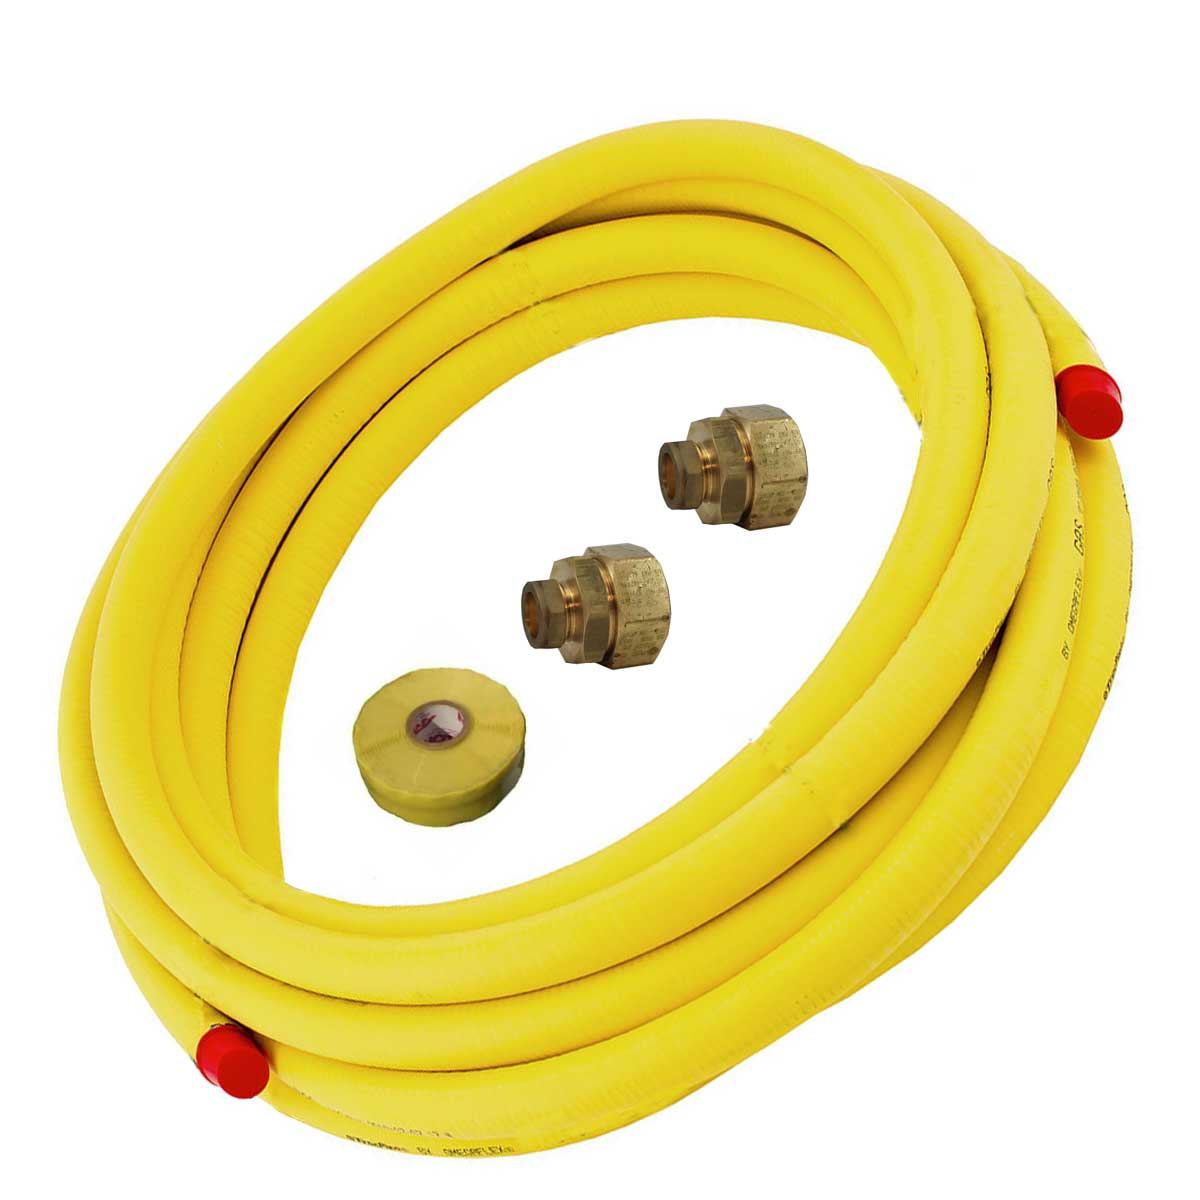 TracPipe 15m Flexible Gas Pipe Fittings and Tape Pack 22mm